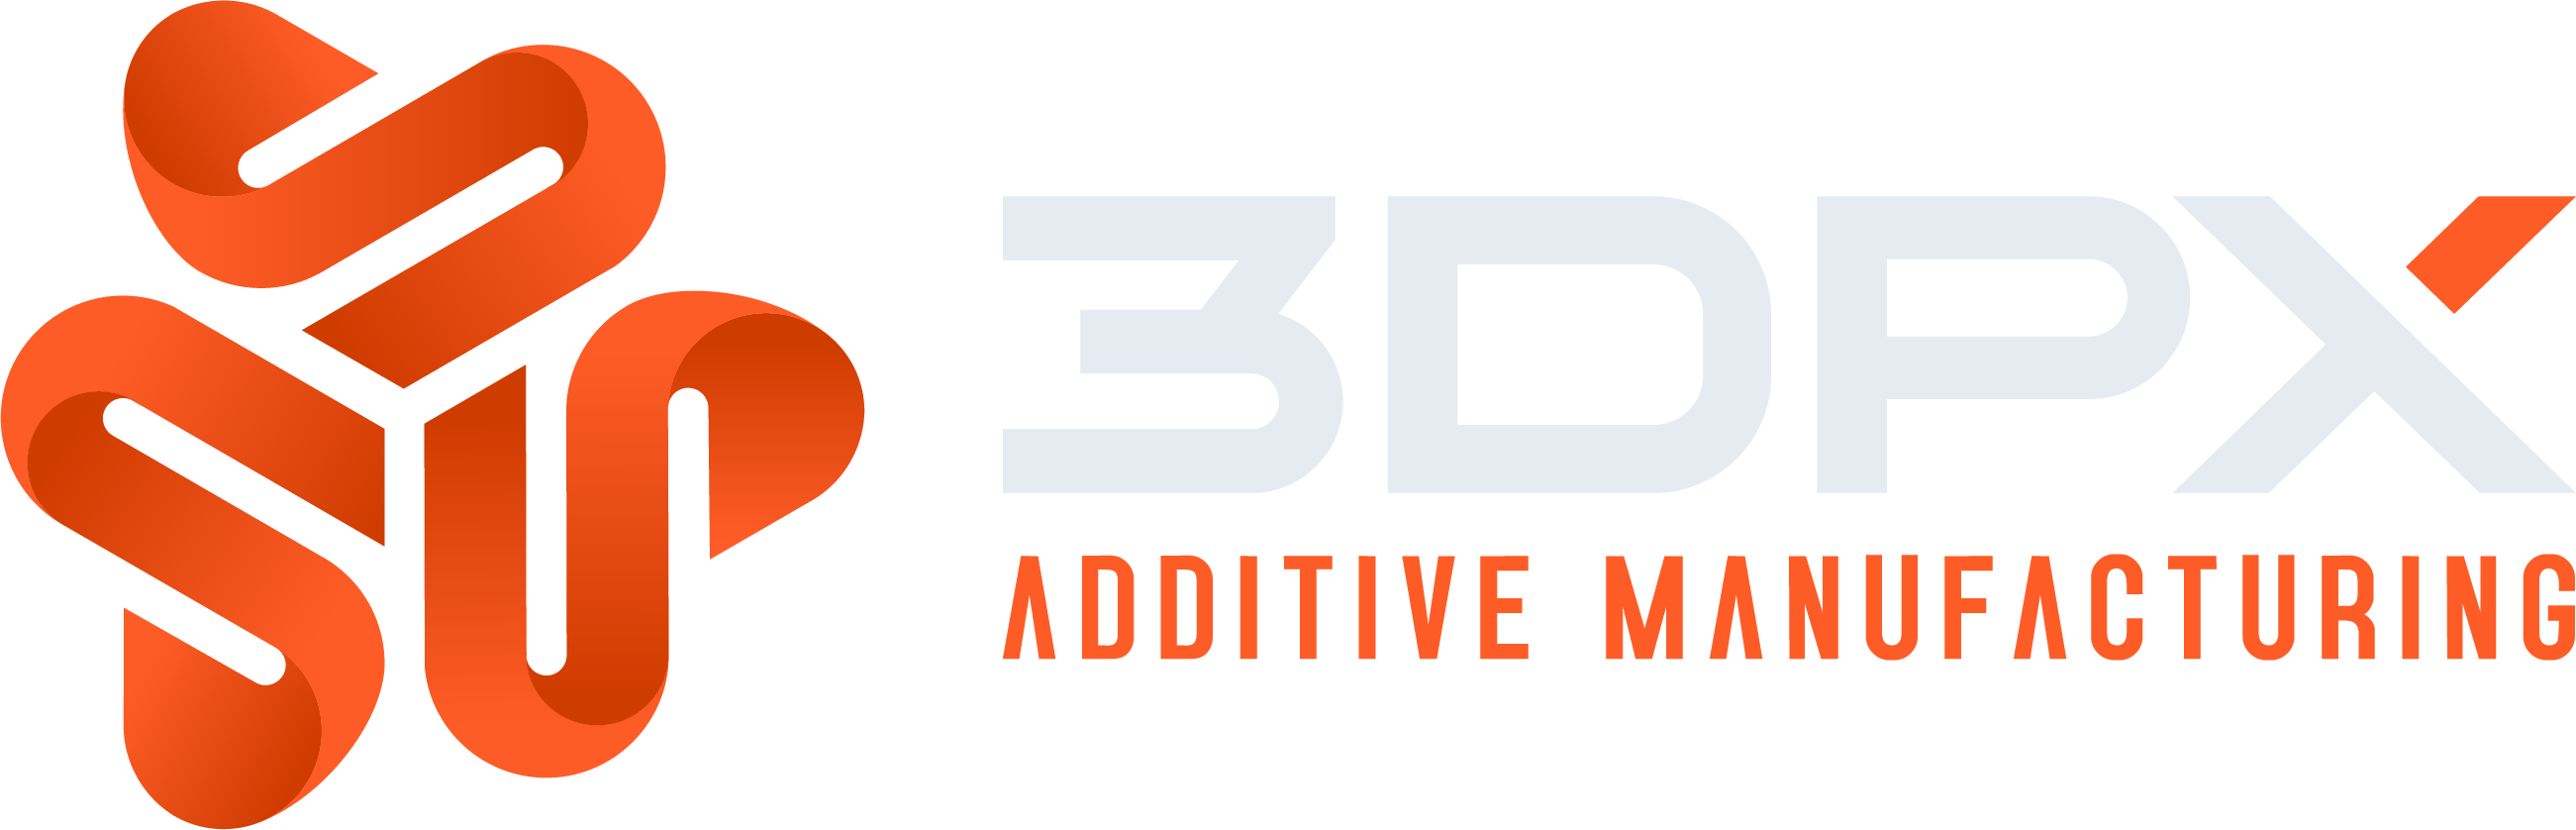 3DPX | 3D Printing and 3D Design